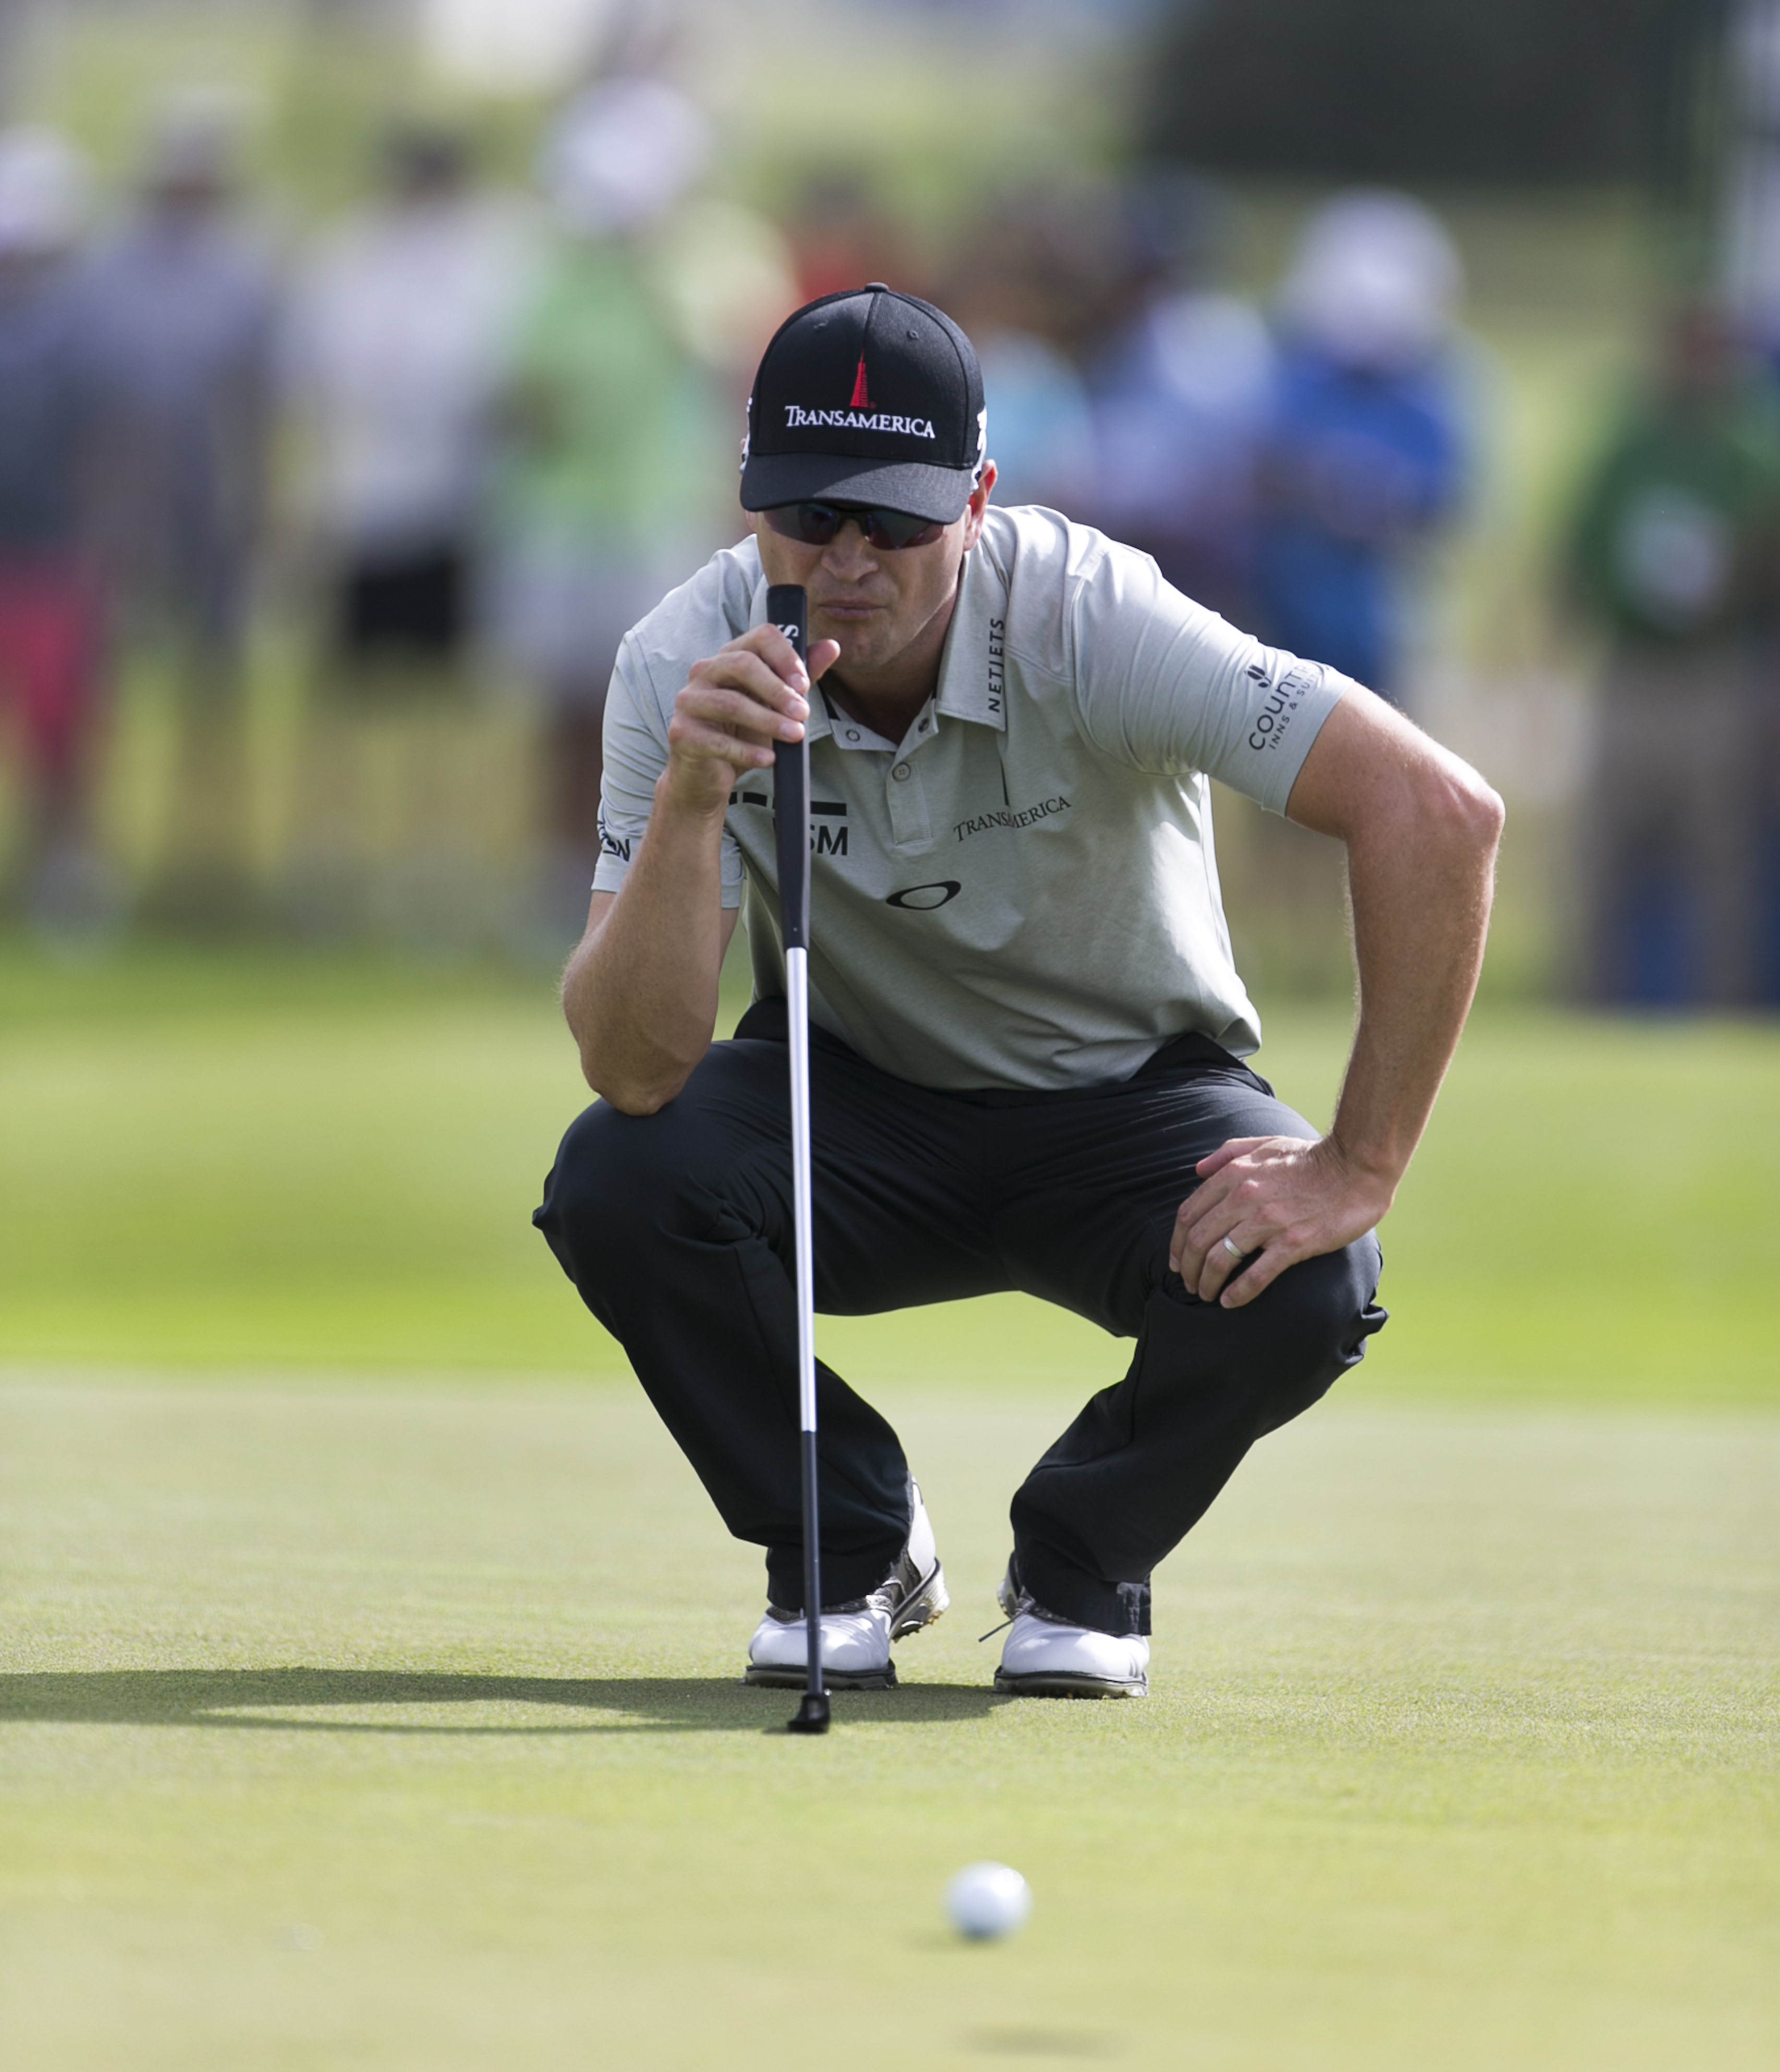 Zach Johnson shot 5-over par on the front nine during his first round at the Honda Classic at PGA National.